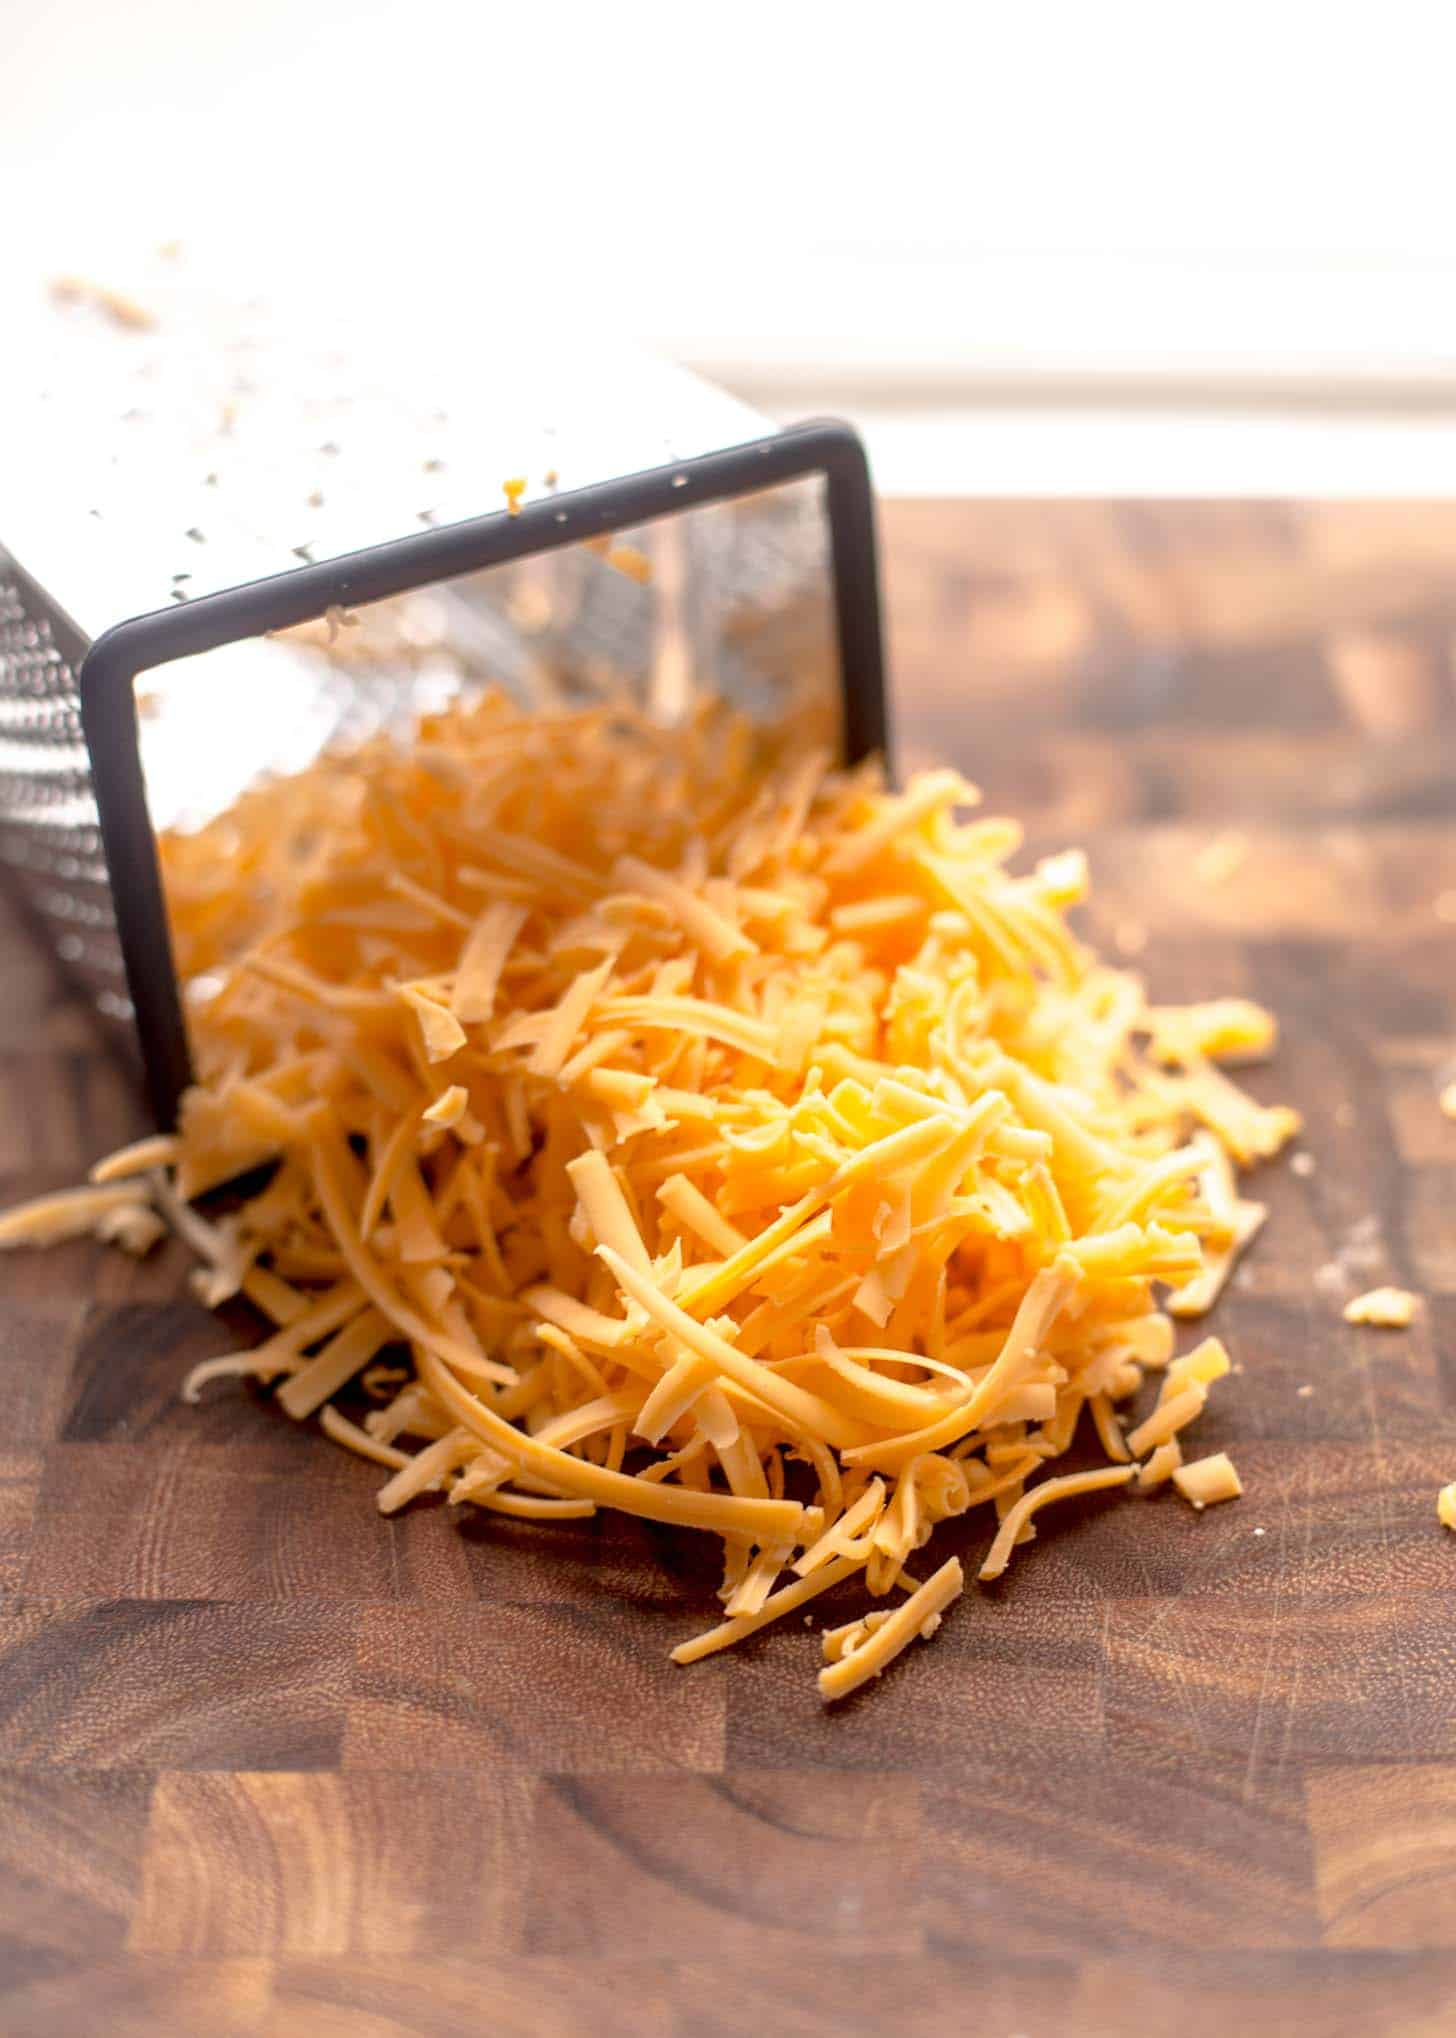 grated cheddar on a wooden butcher block